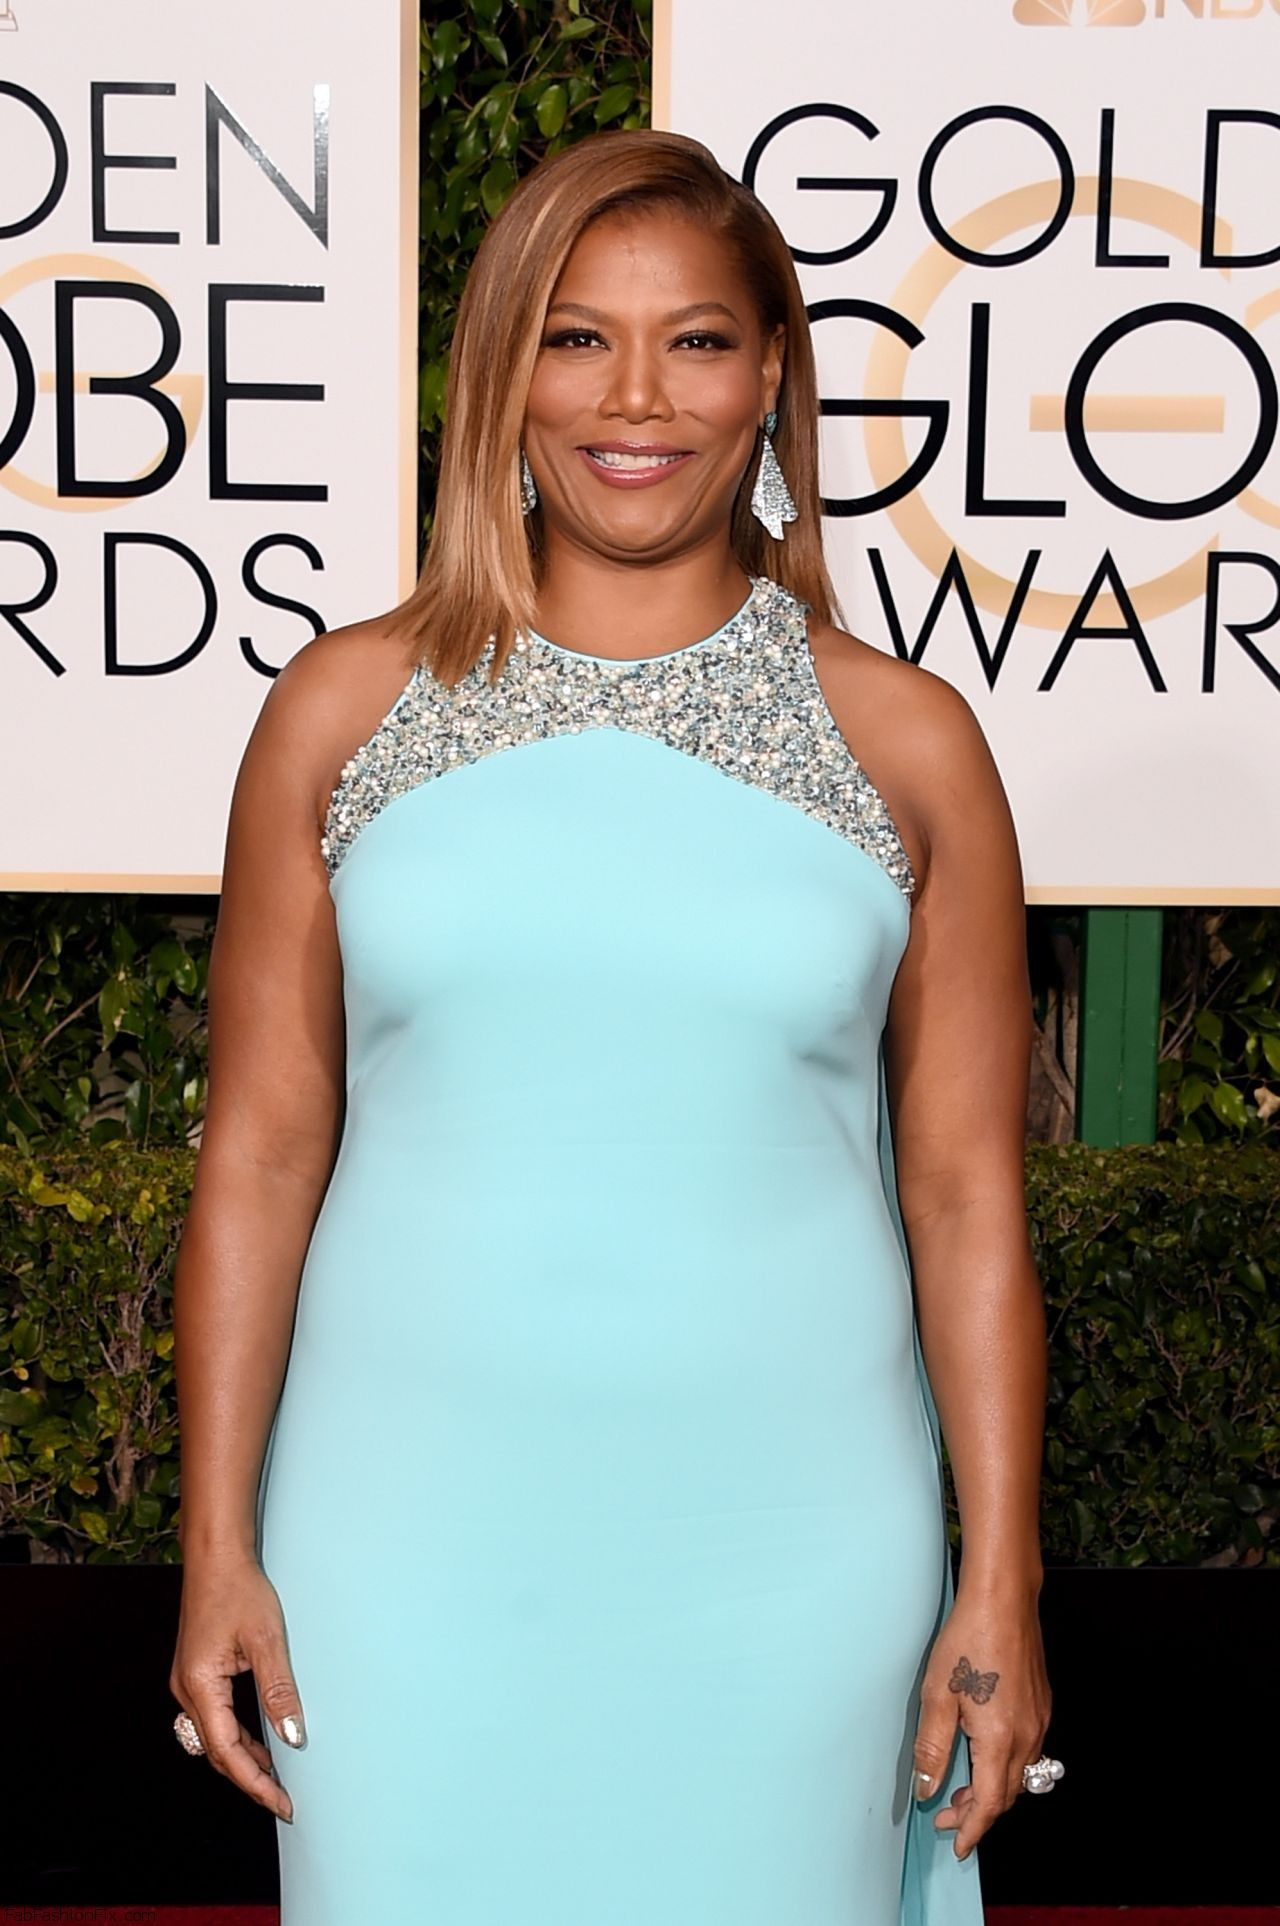 queen-latifah-2016-golden-globe-awards-in-beverly-hills-2